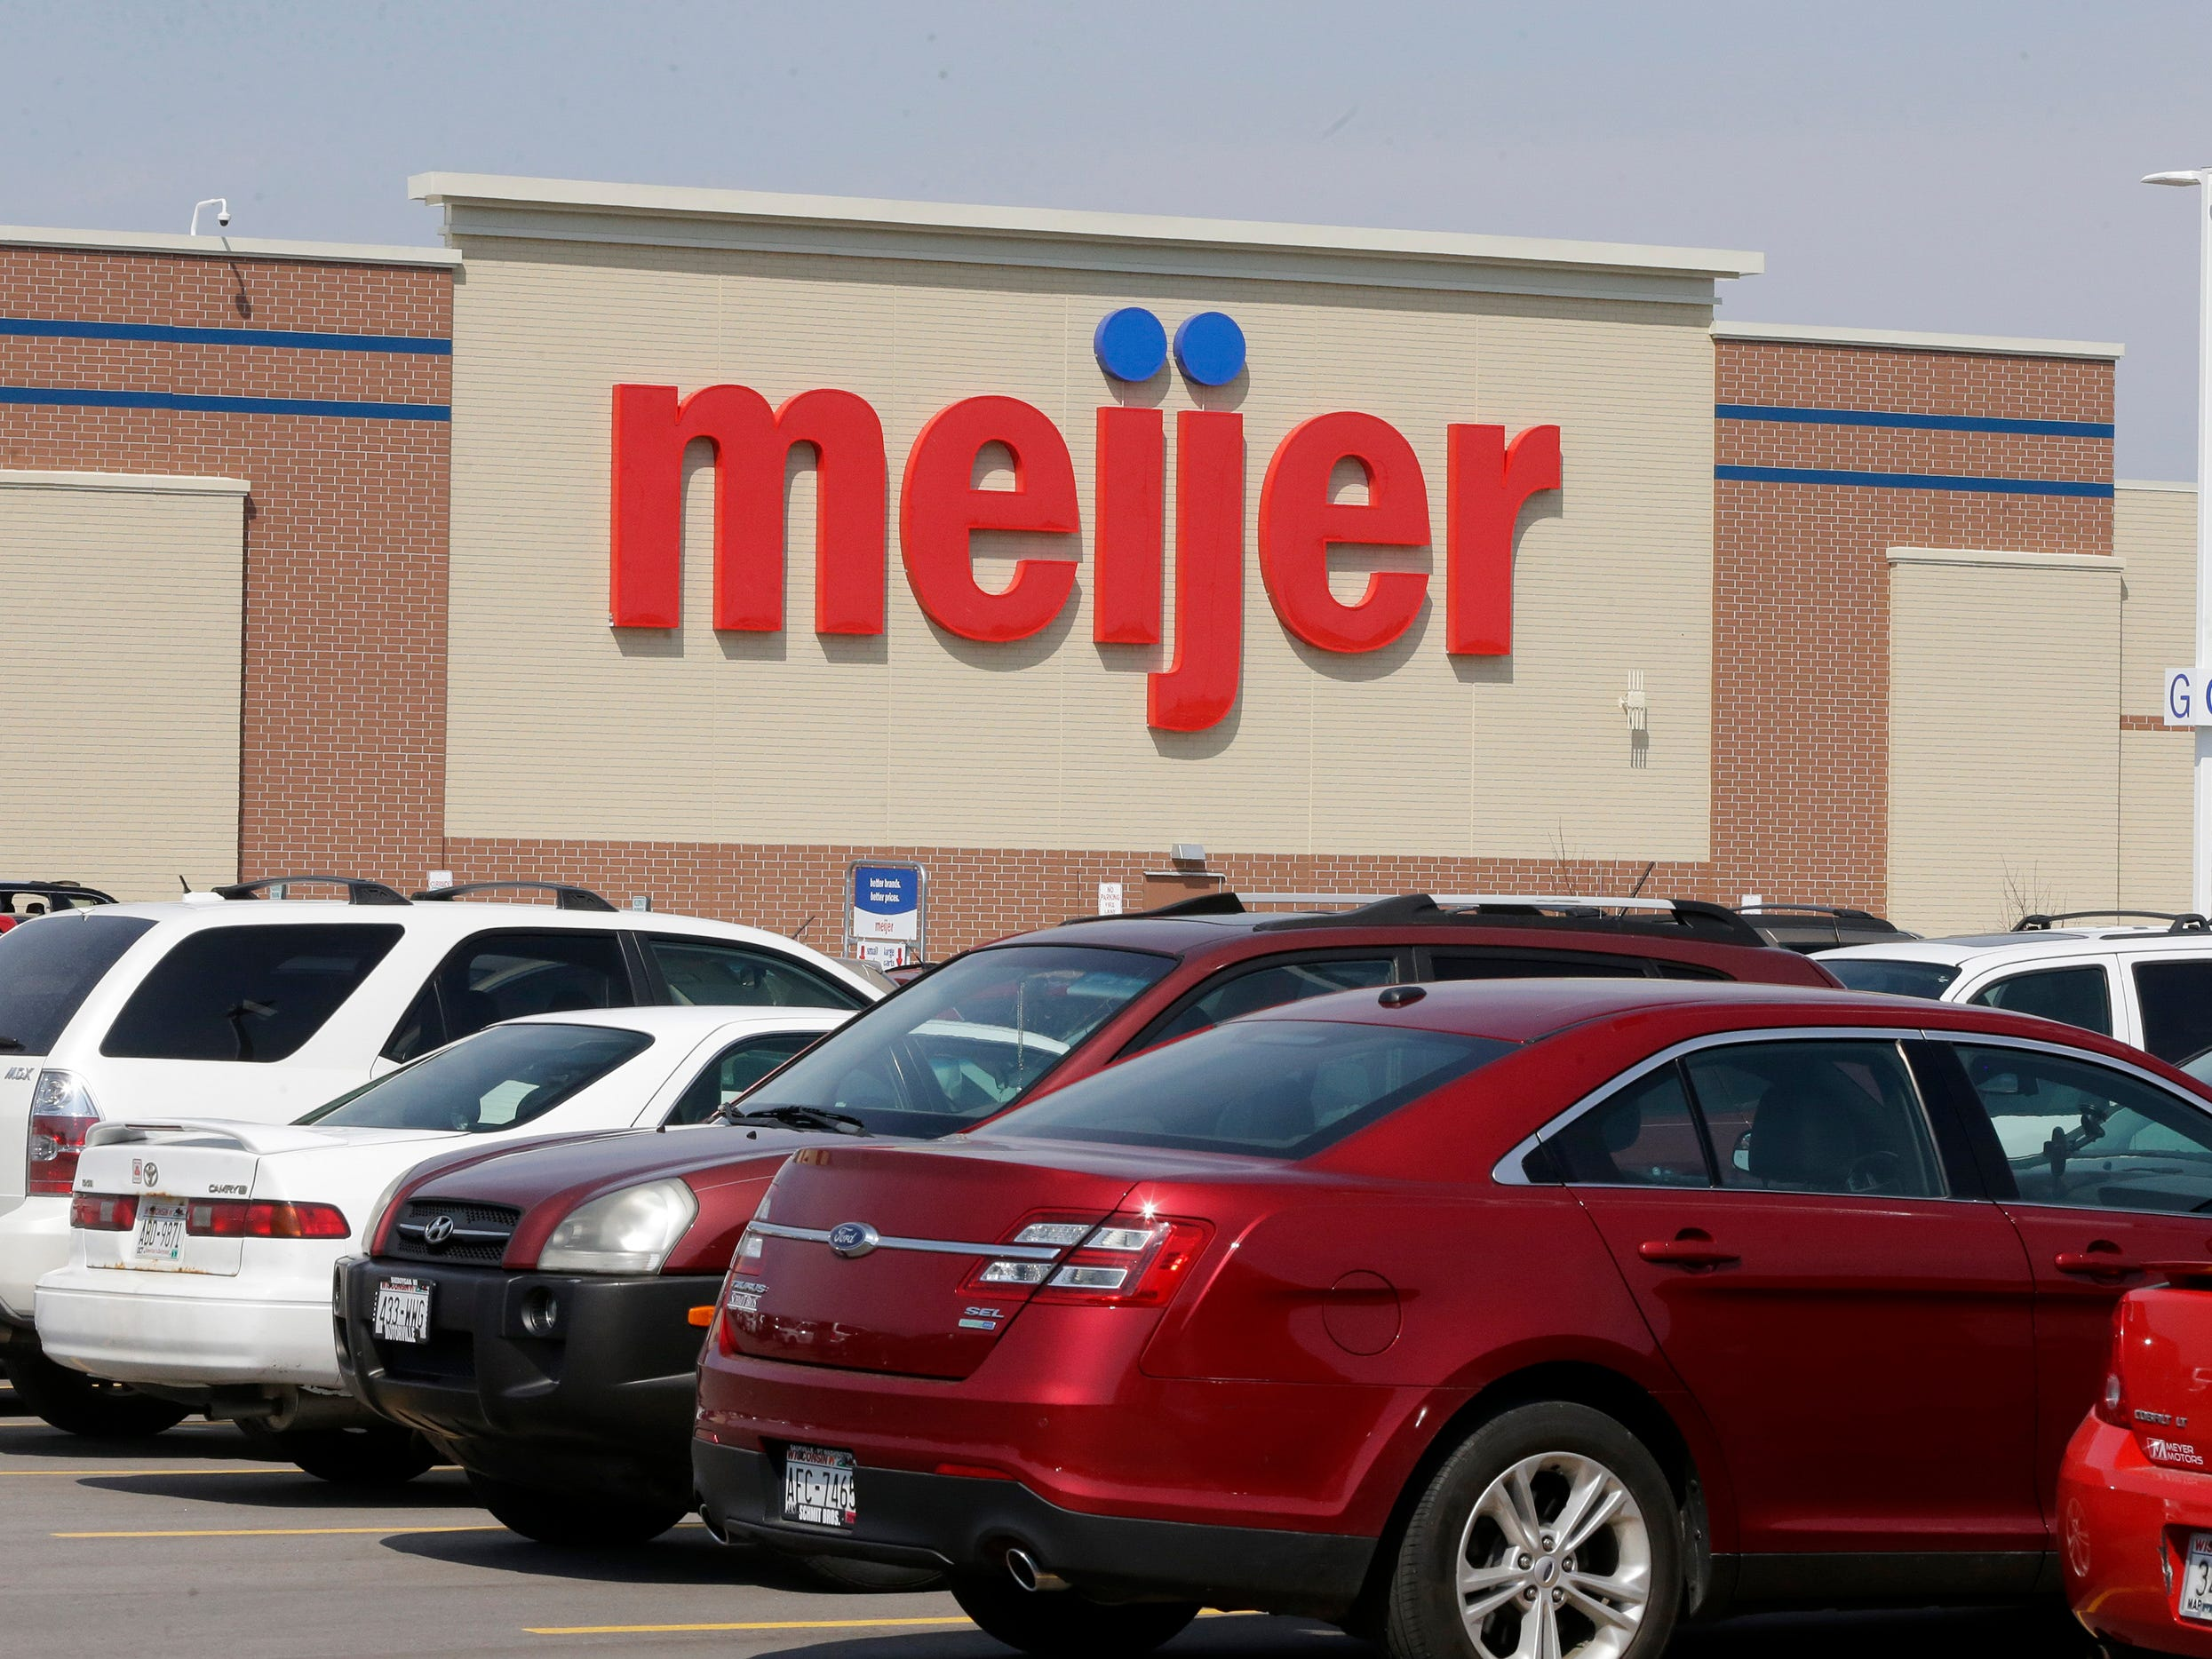 The exterior at Meijer, Thursday April 25, 2019, in Sheboygan, Wis. The 155,000-square-foot supercenter has 300 employees on opening day.